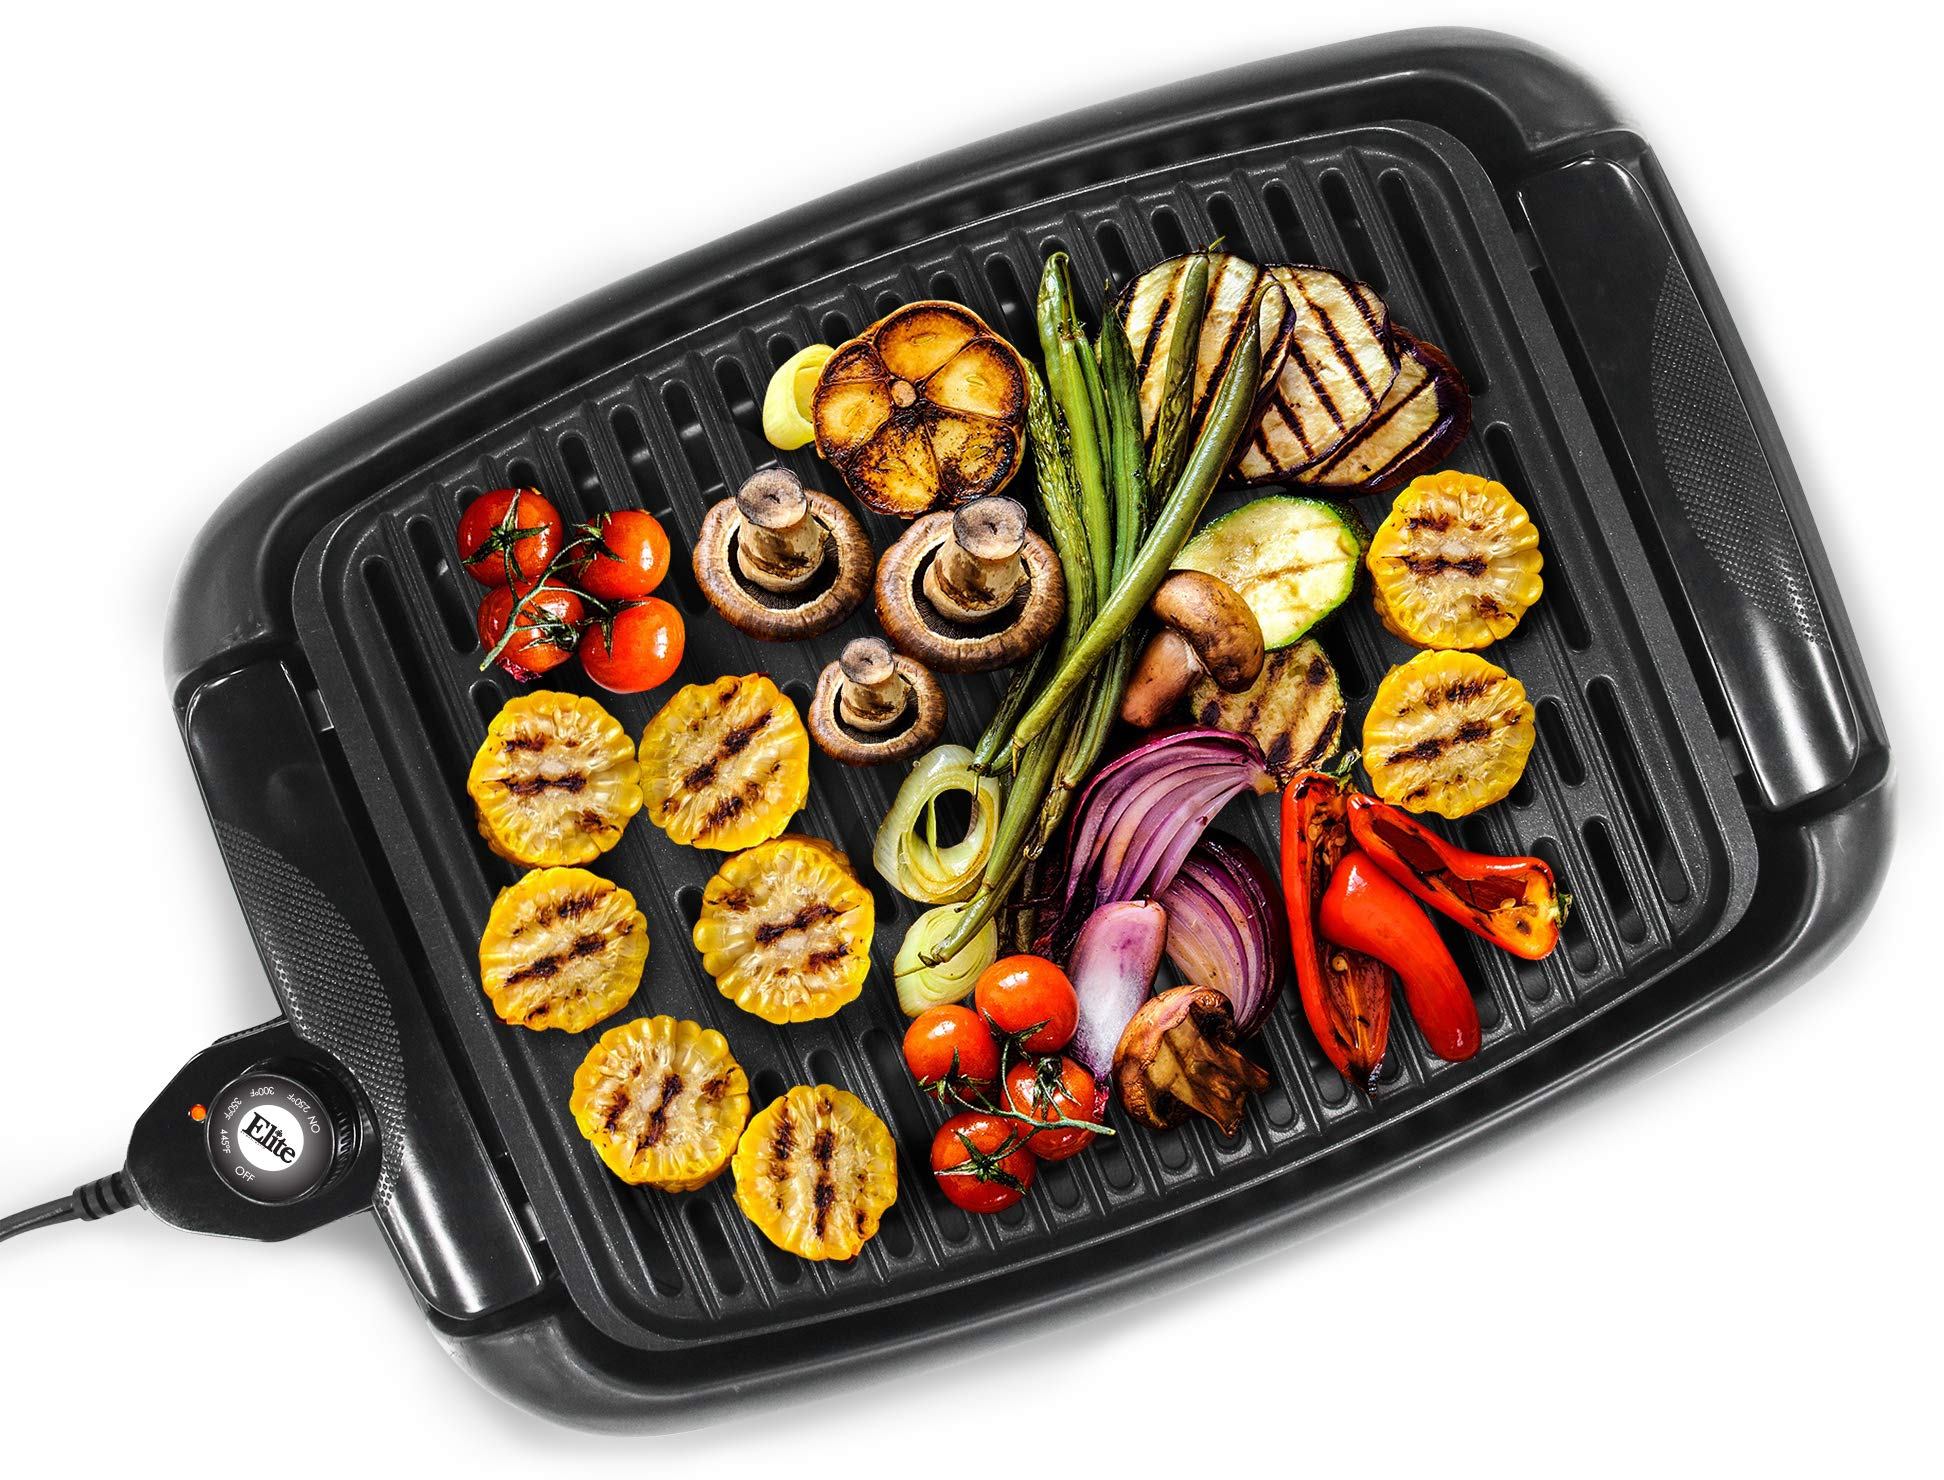 Maxi-Matic EGL-3450 Indoor Electric Non-Stick Grill Adjustable Thermostat, Dishwasher Safe, Faster Heat Up, Low-Fat Meals, Easy Clean Design, 13 x 9-inch, Black by Maxi-Matic